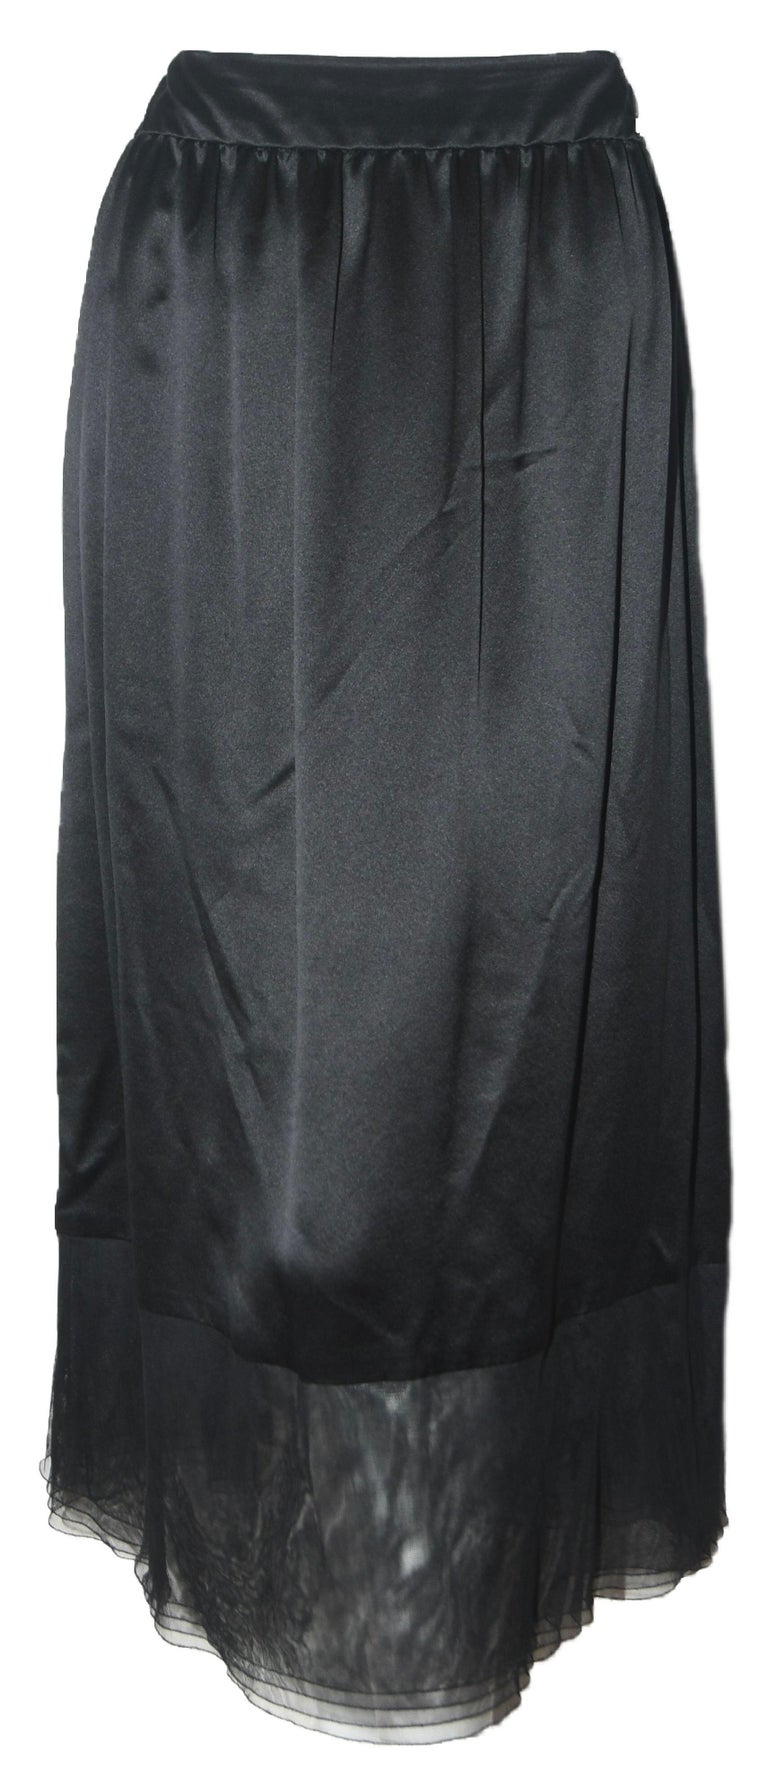 Chanel Black Silk 2 Piece Long Sleeve Top & Long Skirt Dress For Sale 1